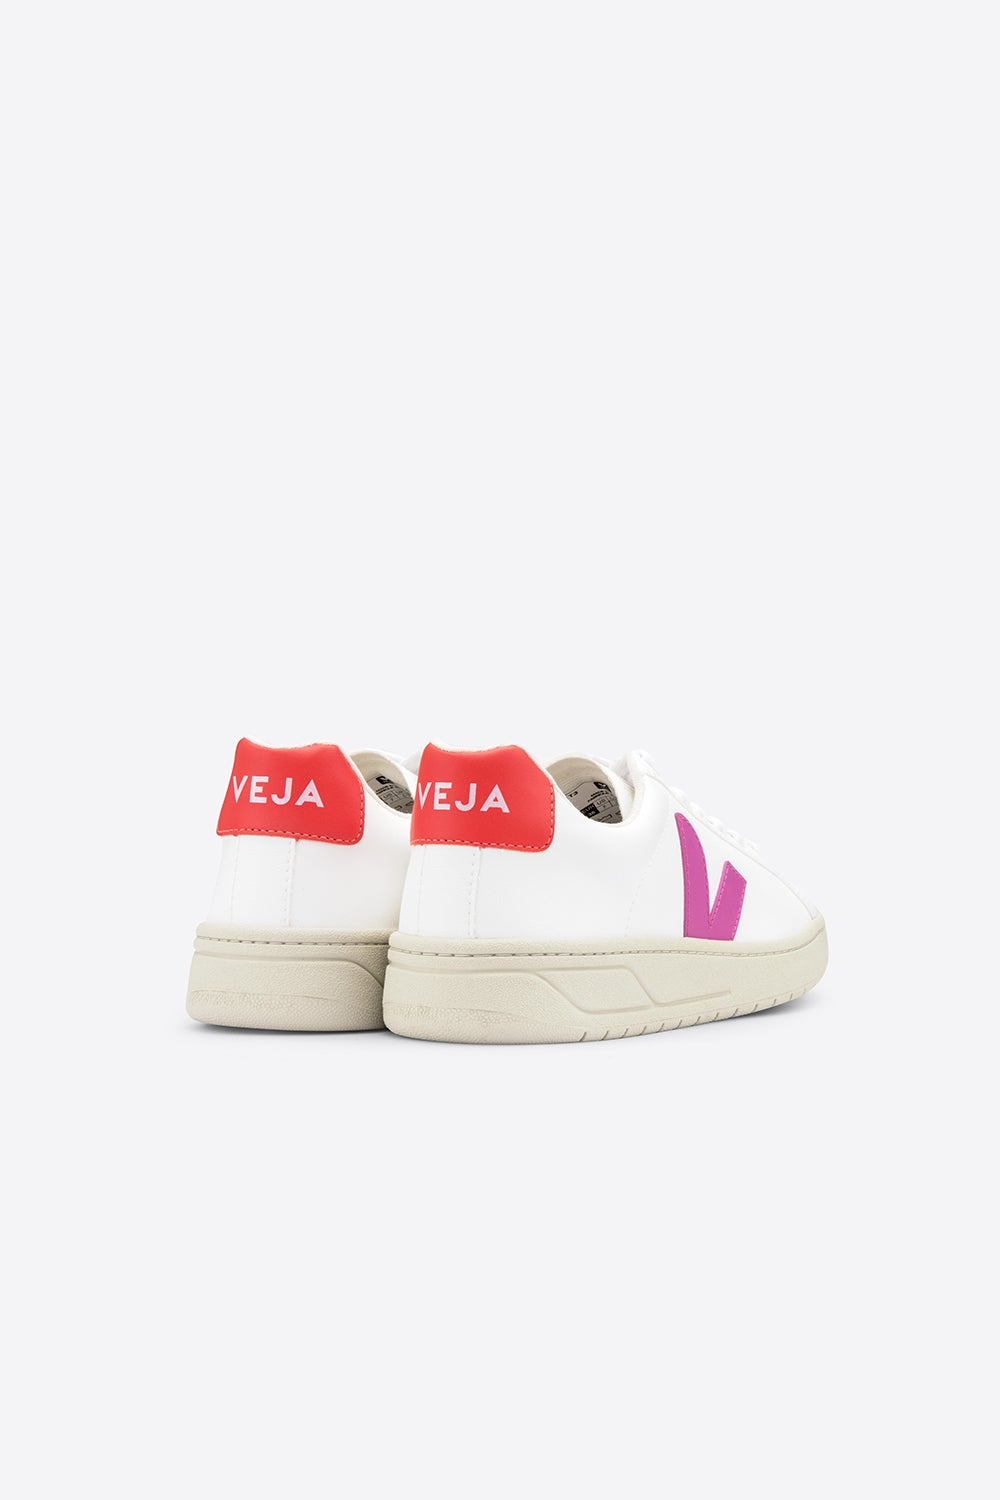 Veja Urca White/Ultraviolet/Orange Fluo